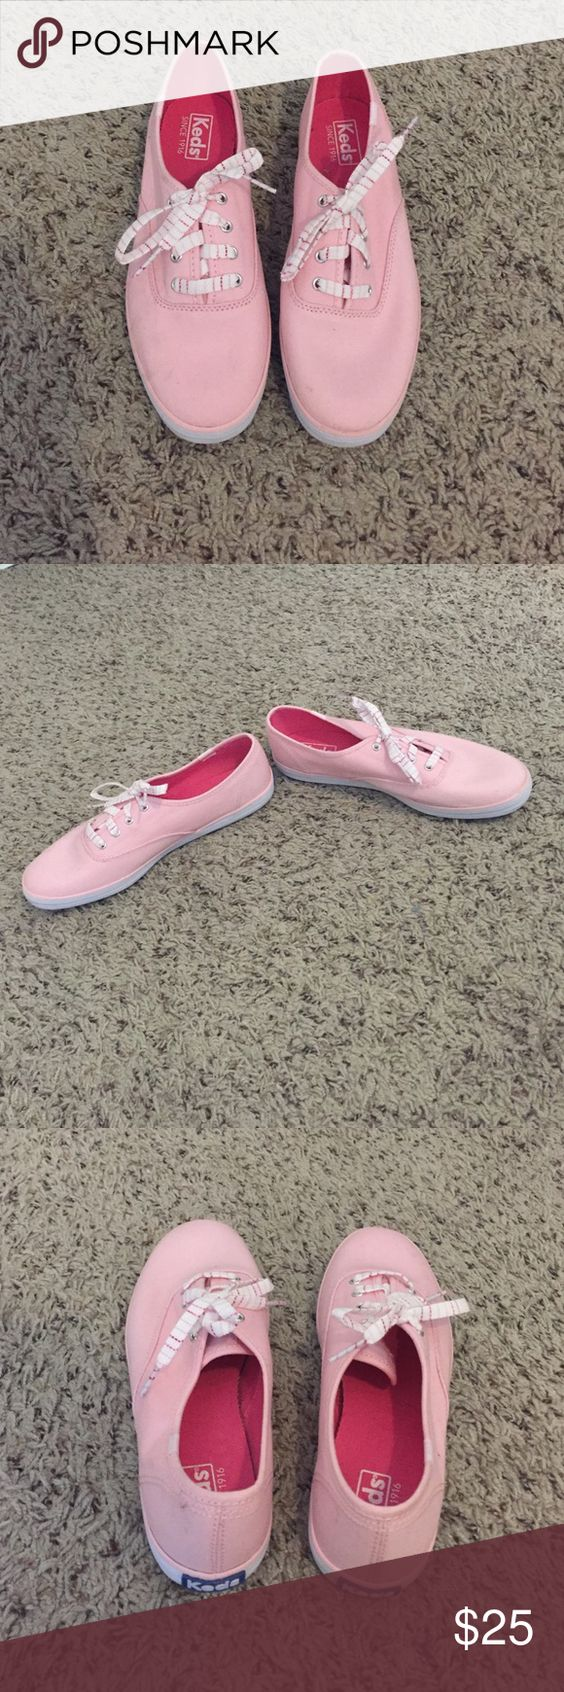 NEW light pink Keds sneakers NEW light pink Keds sneakers size 8, never worn keds Shoes Sneakers